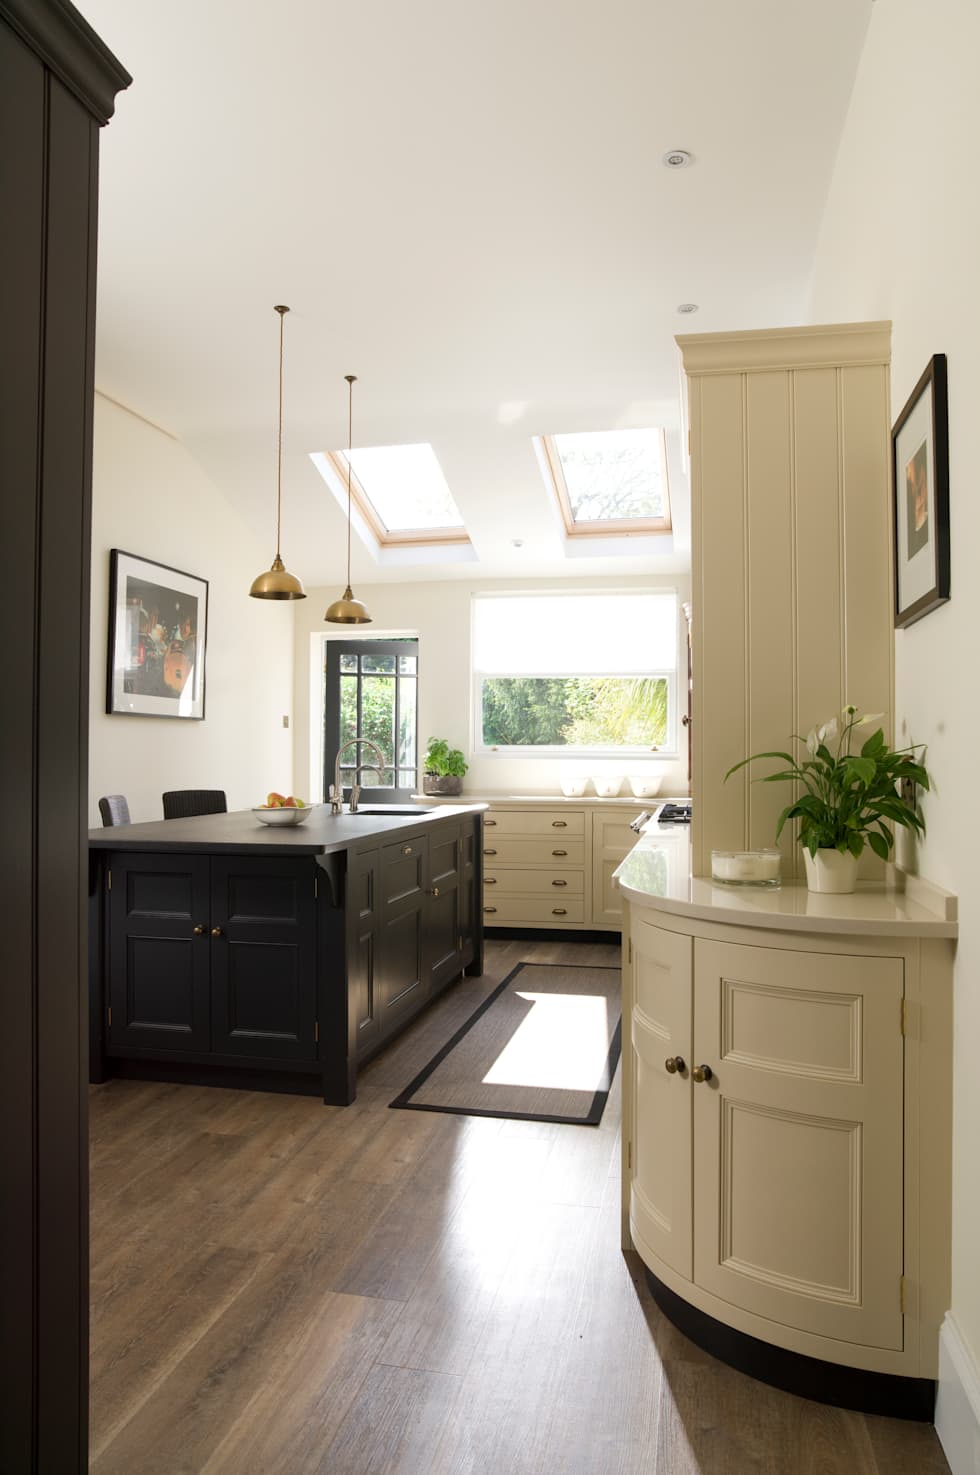 Interior design ideas architecture and renovating photos for Kitchen design kent